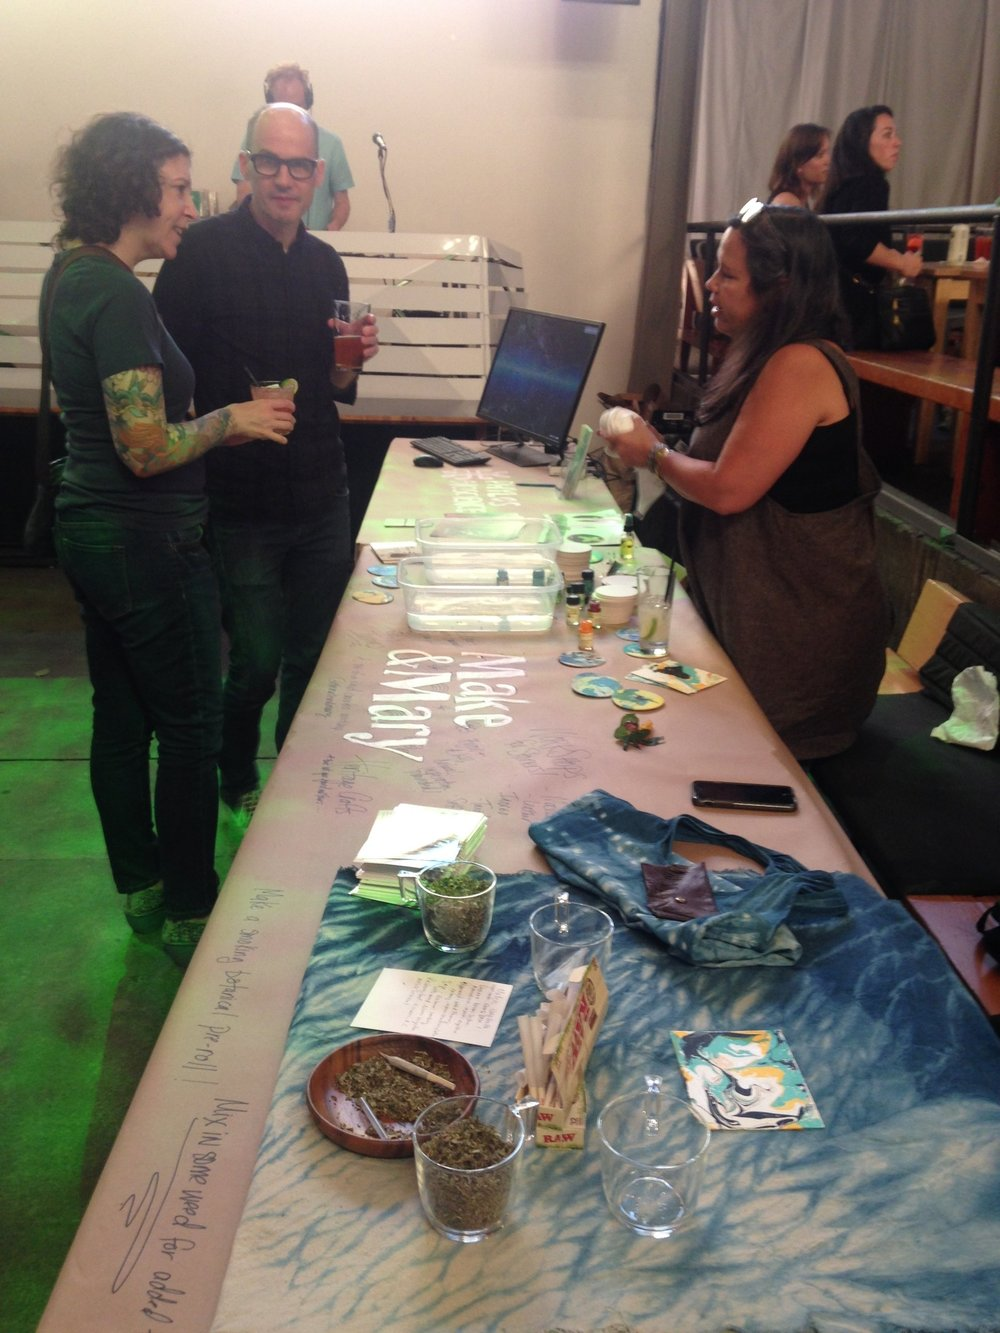 My friends Robin and Mike were amongst the first to arrive. Here they are talking with Yvonne Perez Emerson of  Make & Mary . Portland-based Make & Mary offers up all sorts of rad creative arts and crafts cannabis workshops.